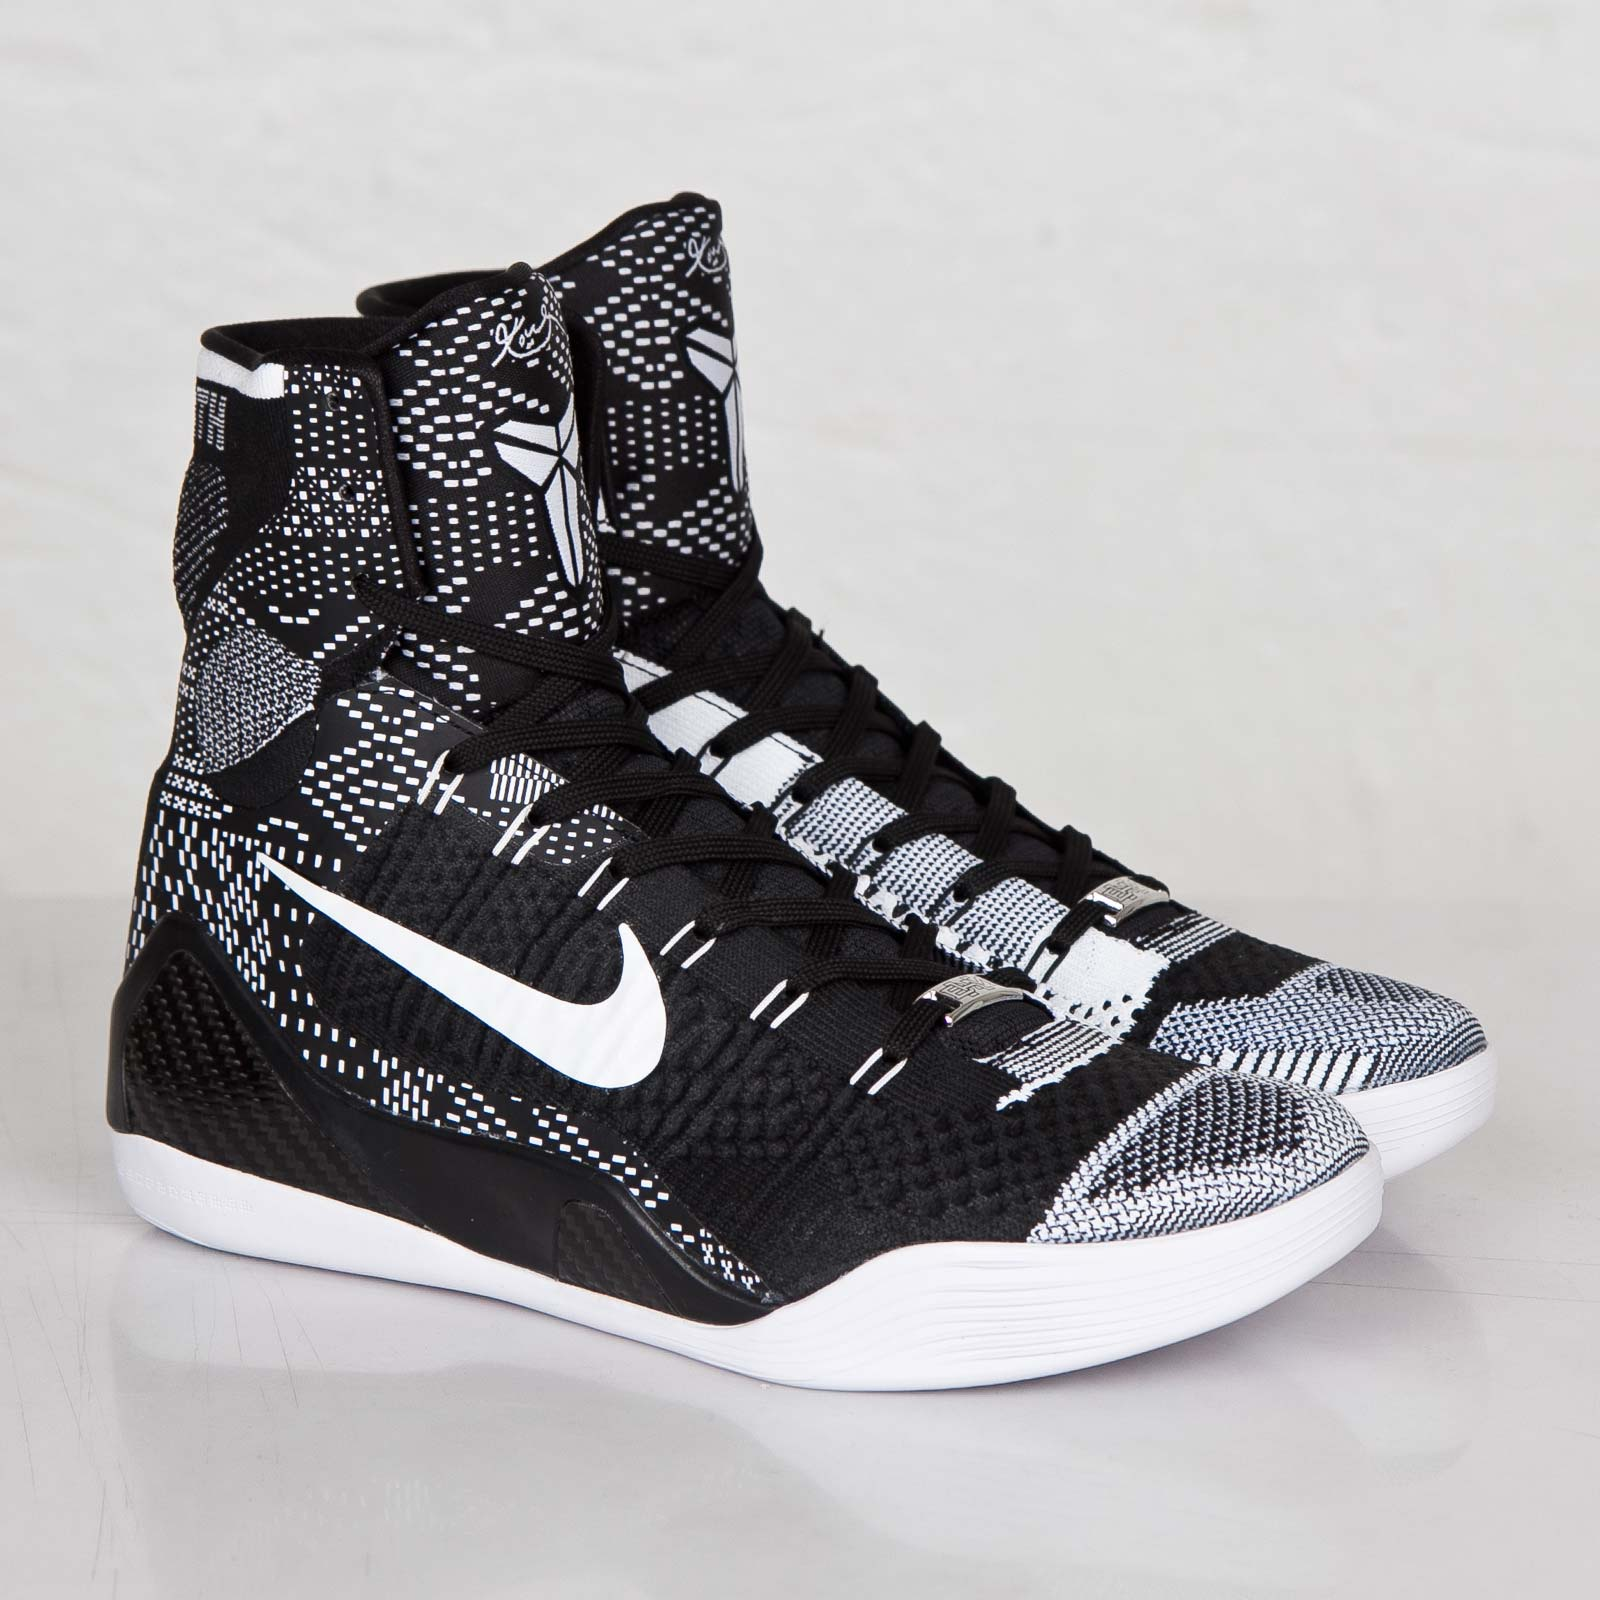 wholesale dealer 6ecd6 fab01 Nike Kobe IX Elite BHM